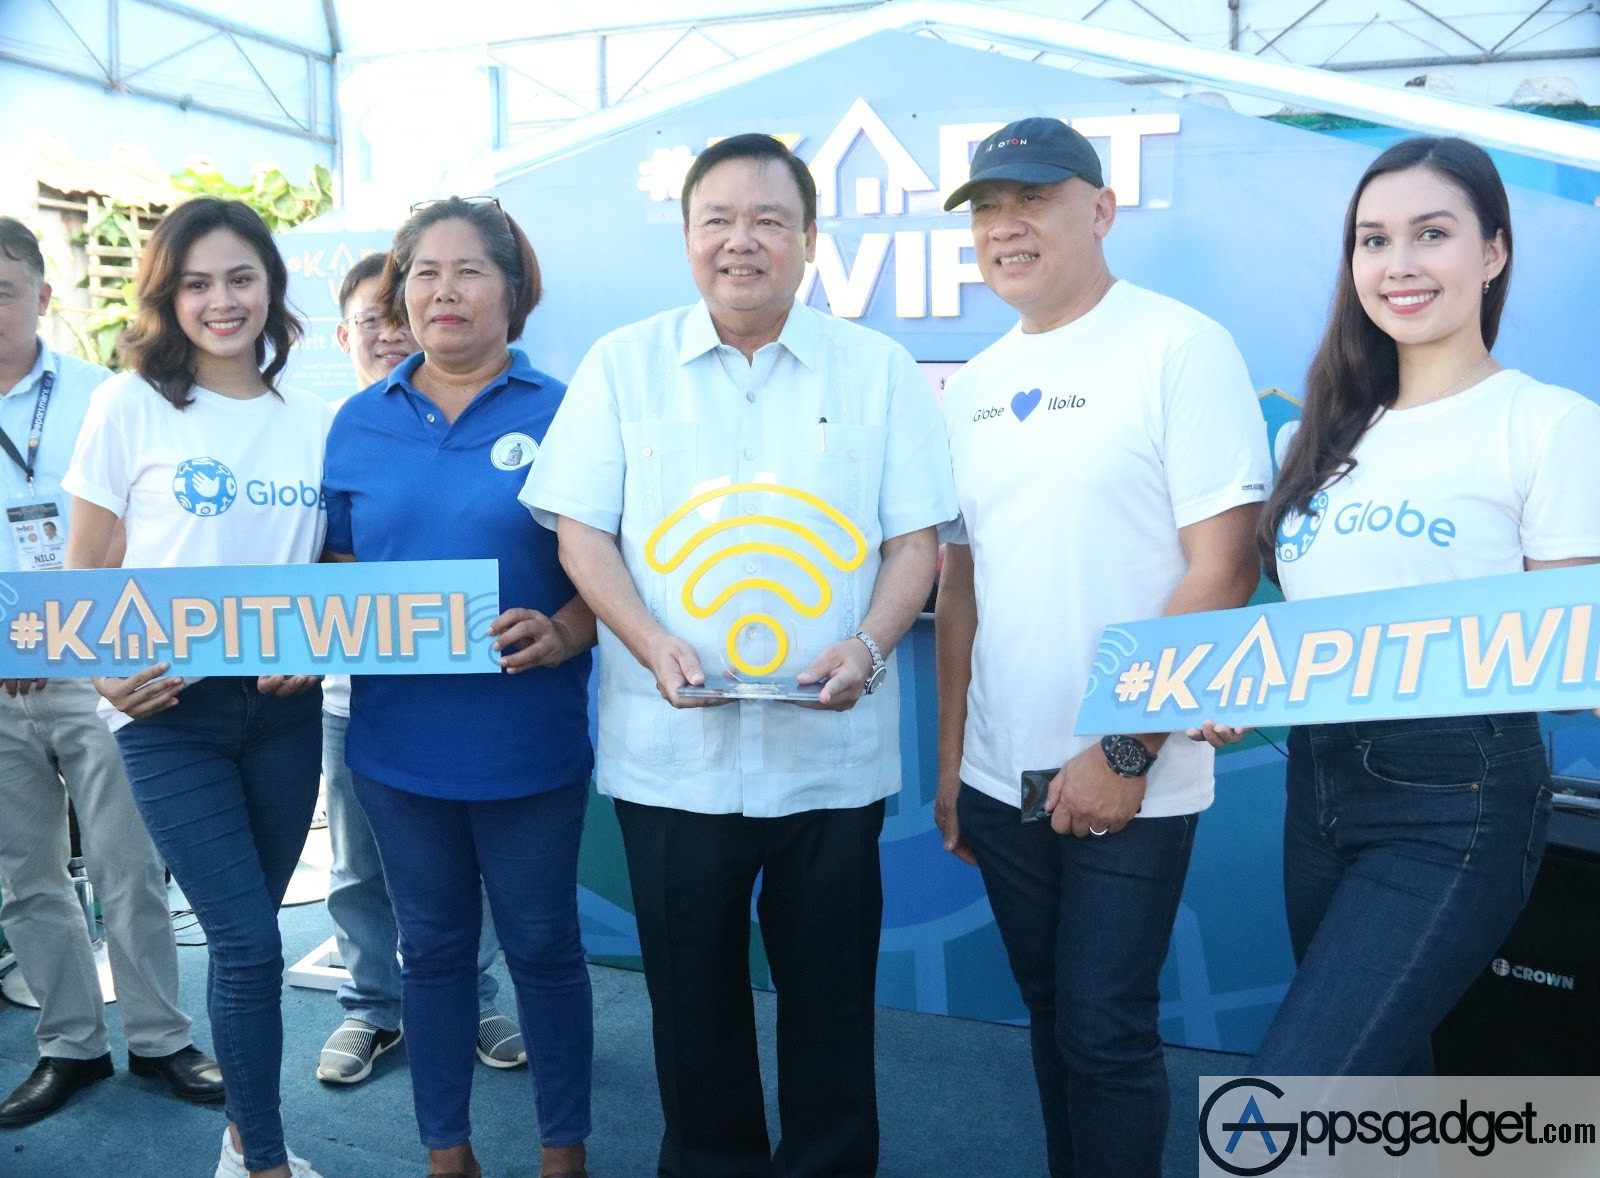 Globe ties up with Iloilo City in deploying more affordable WiFi services